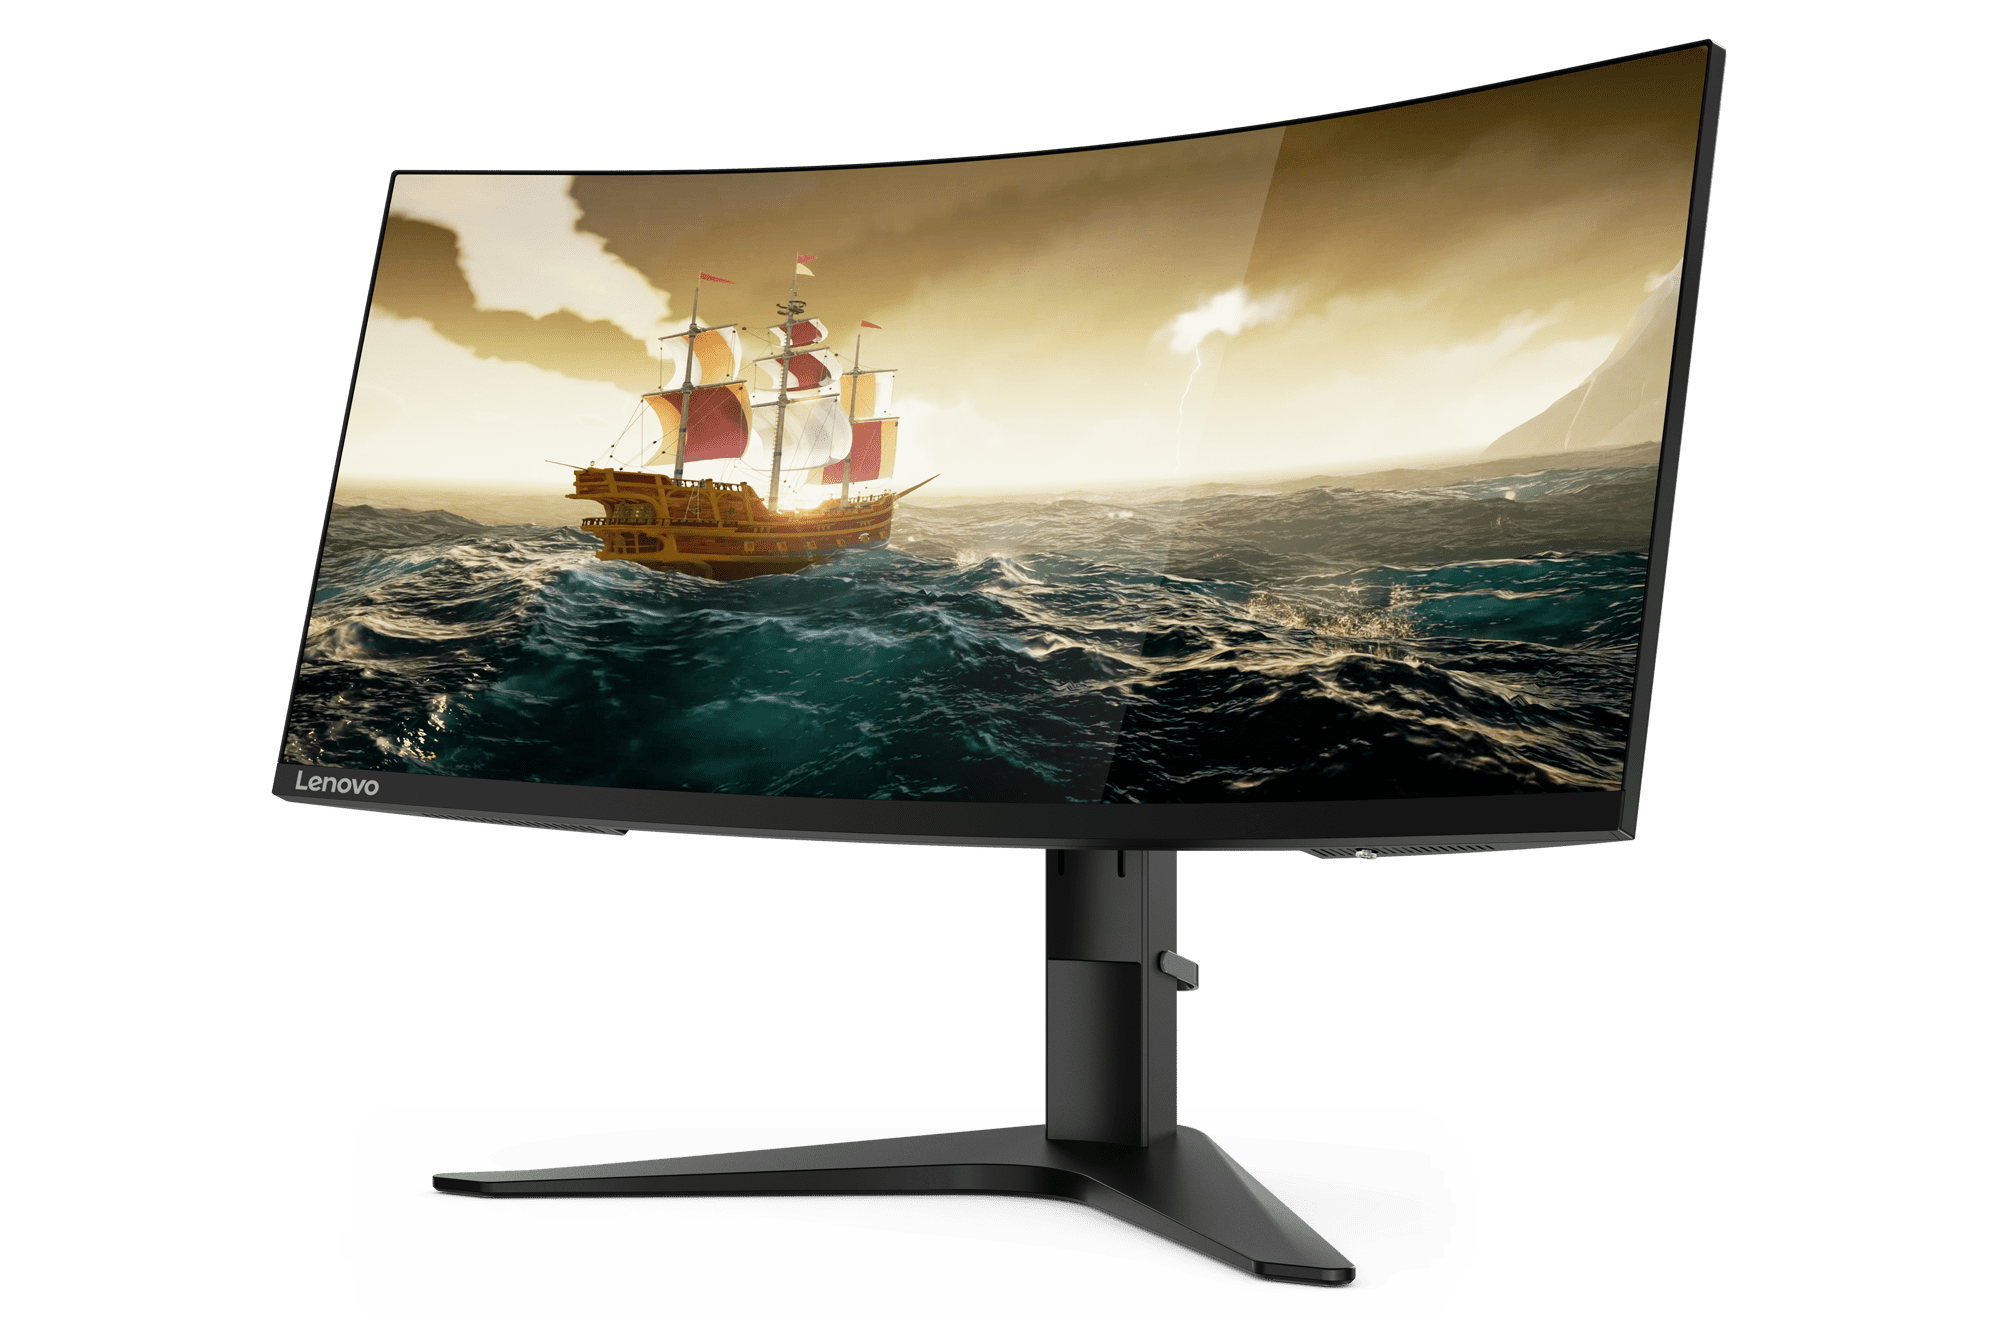 A higher refresh rate on the Lenovo G34w Gaming Monitor (144Hz) minimizes motion blur for natural player movements.